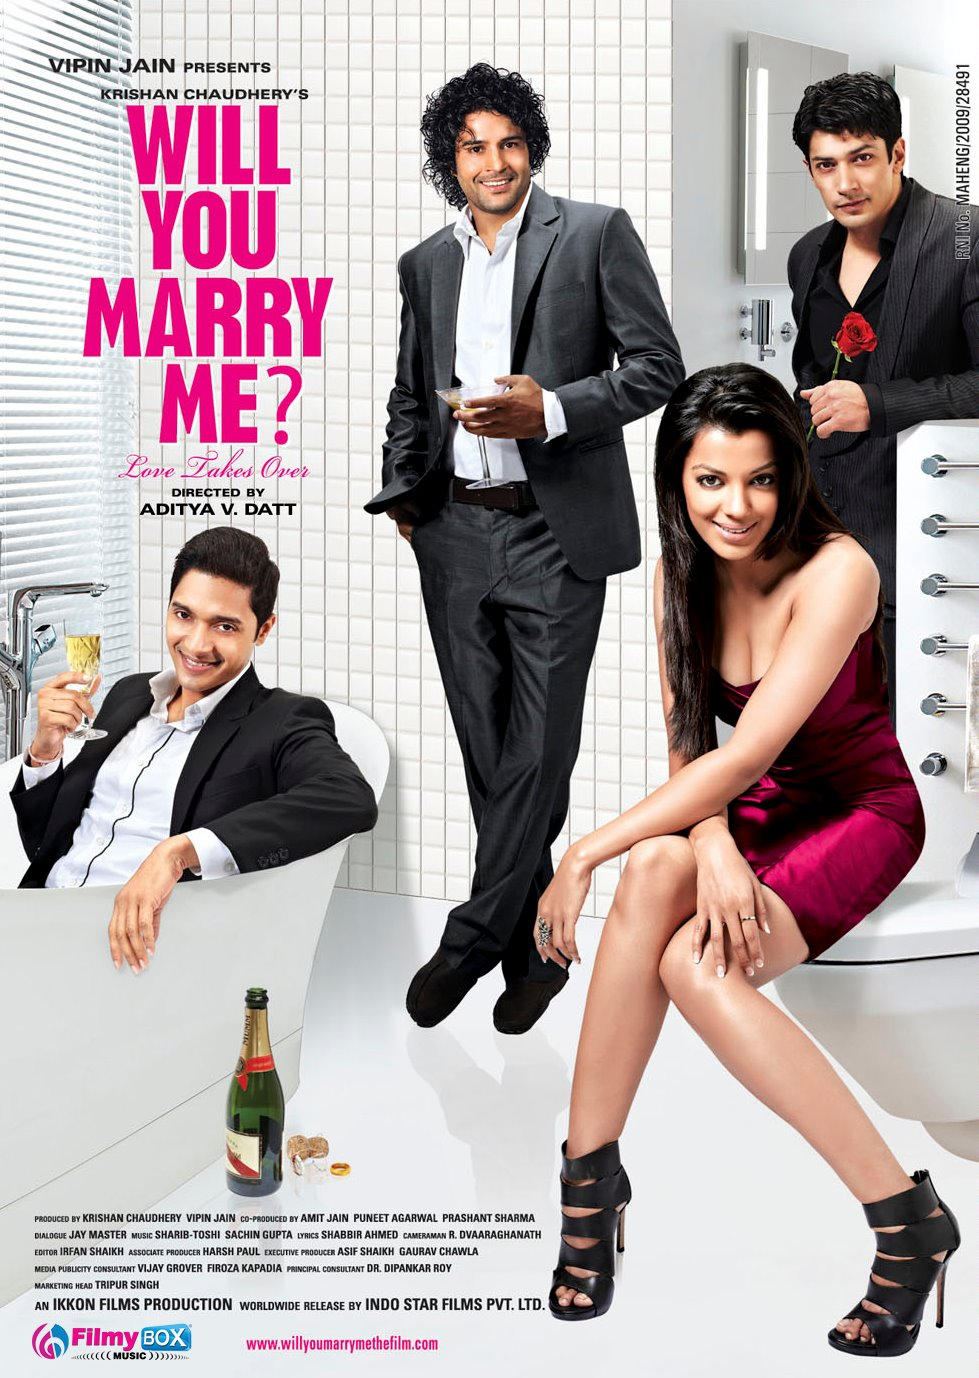 Will You Marry Me? - Movie Poster : Movies, Parties